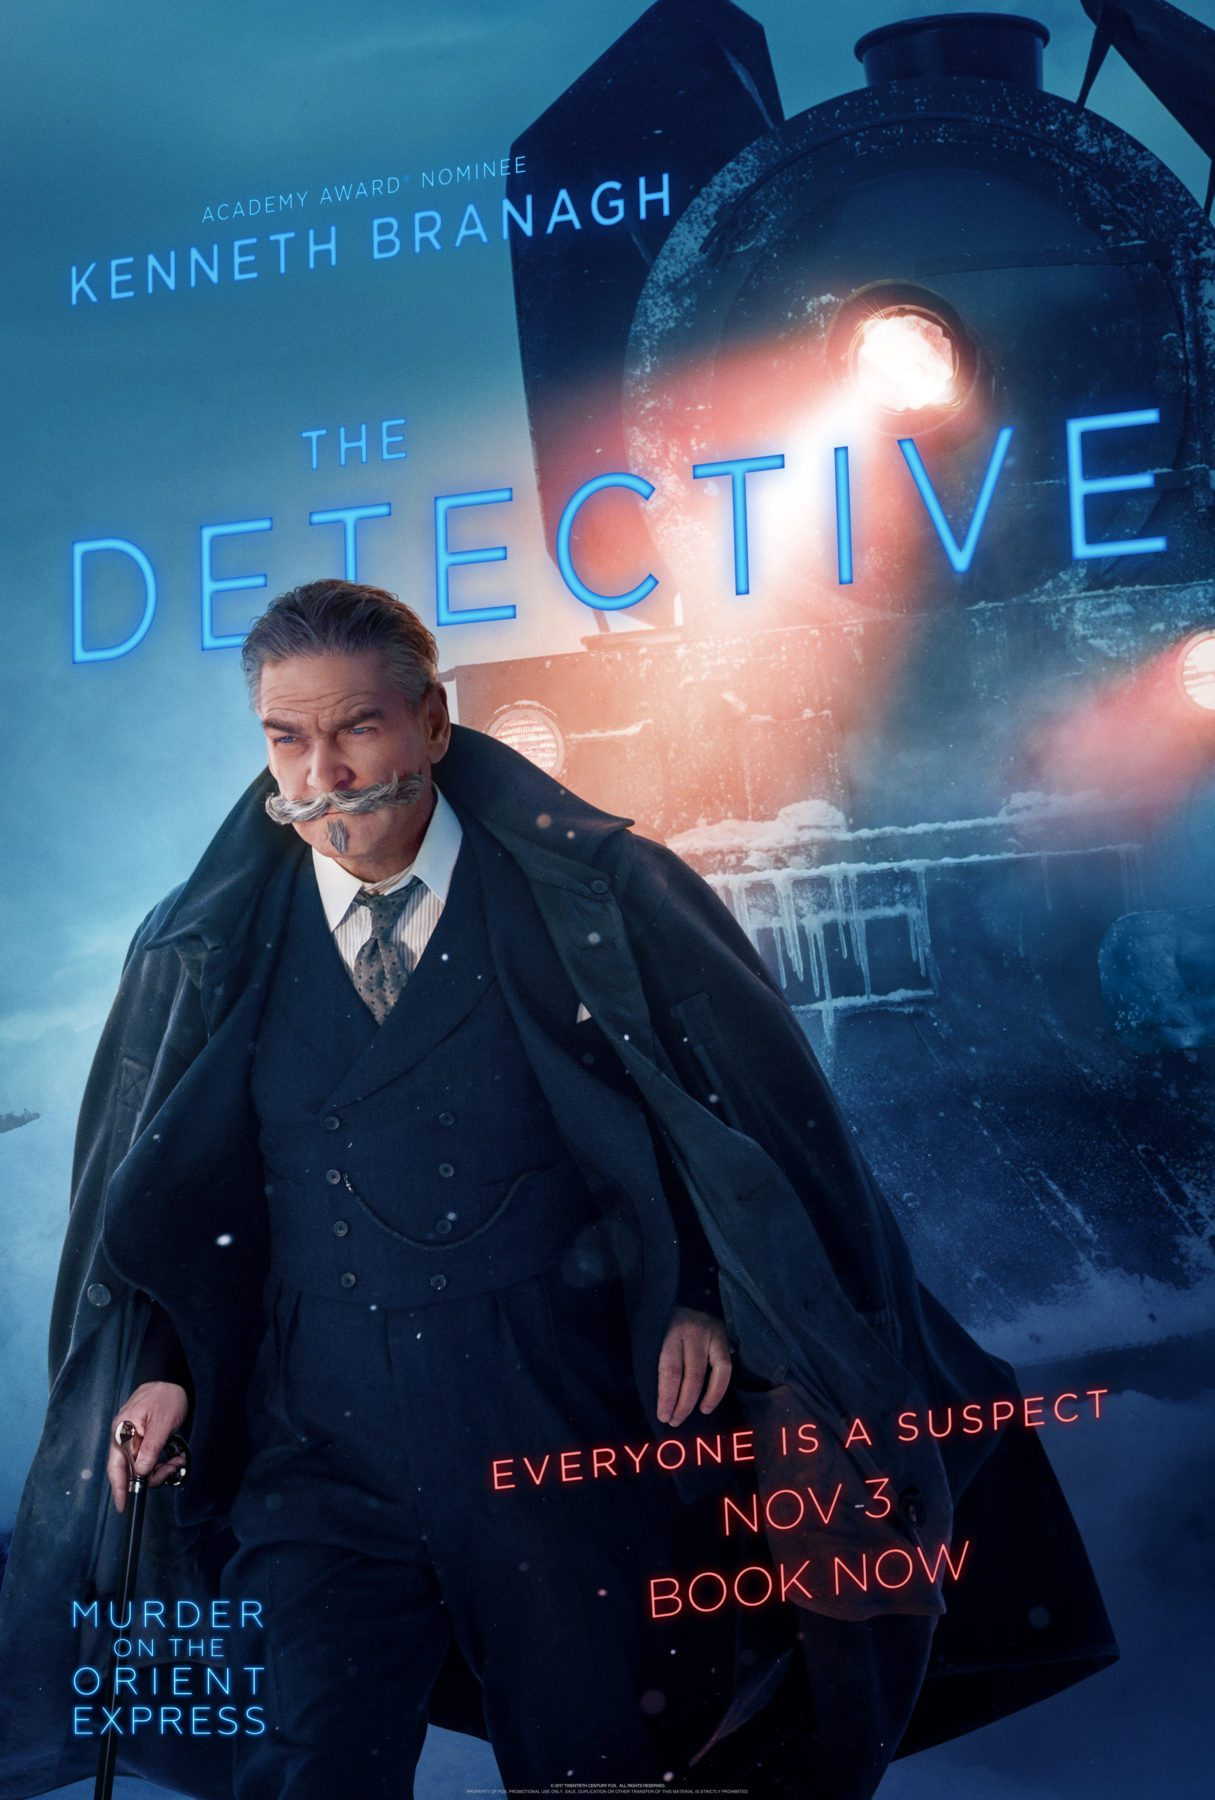 Murder-on-the-Orient-Express-character-posters-1